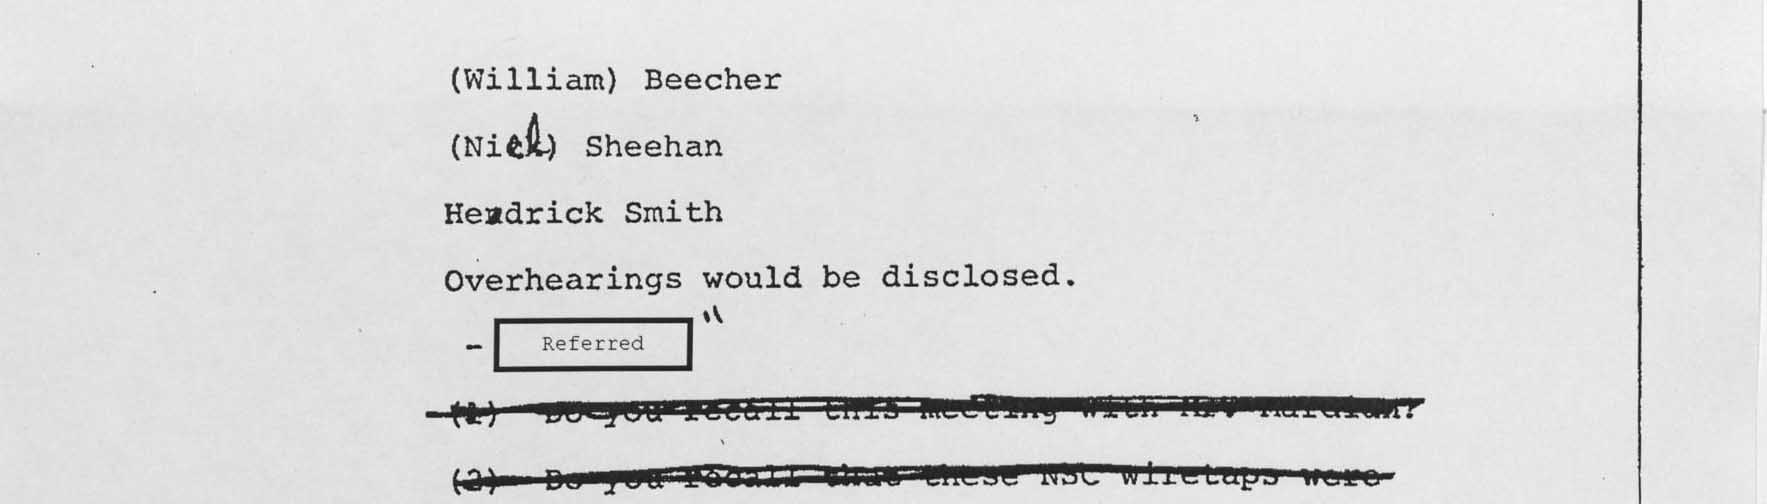 Records of the Watergate Special Prosecution Force